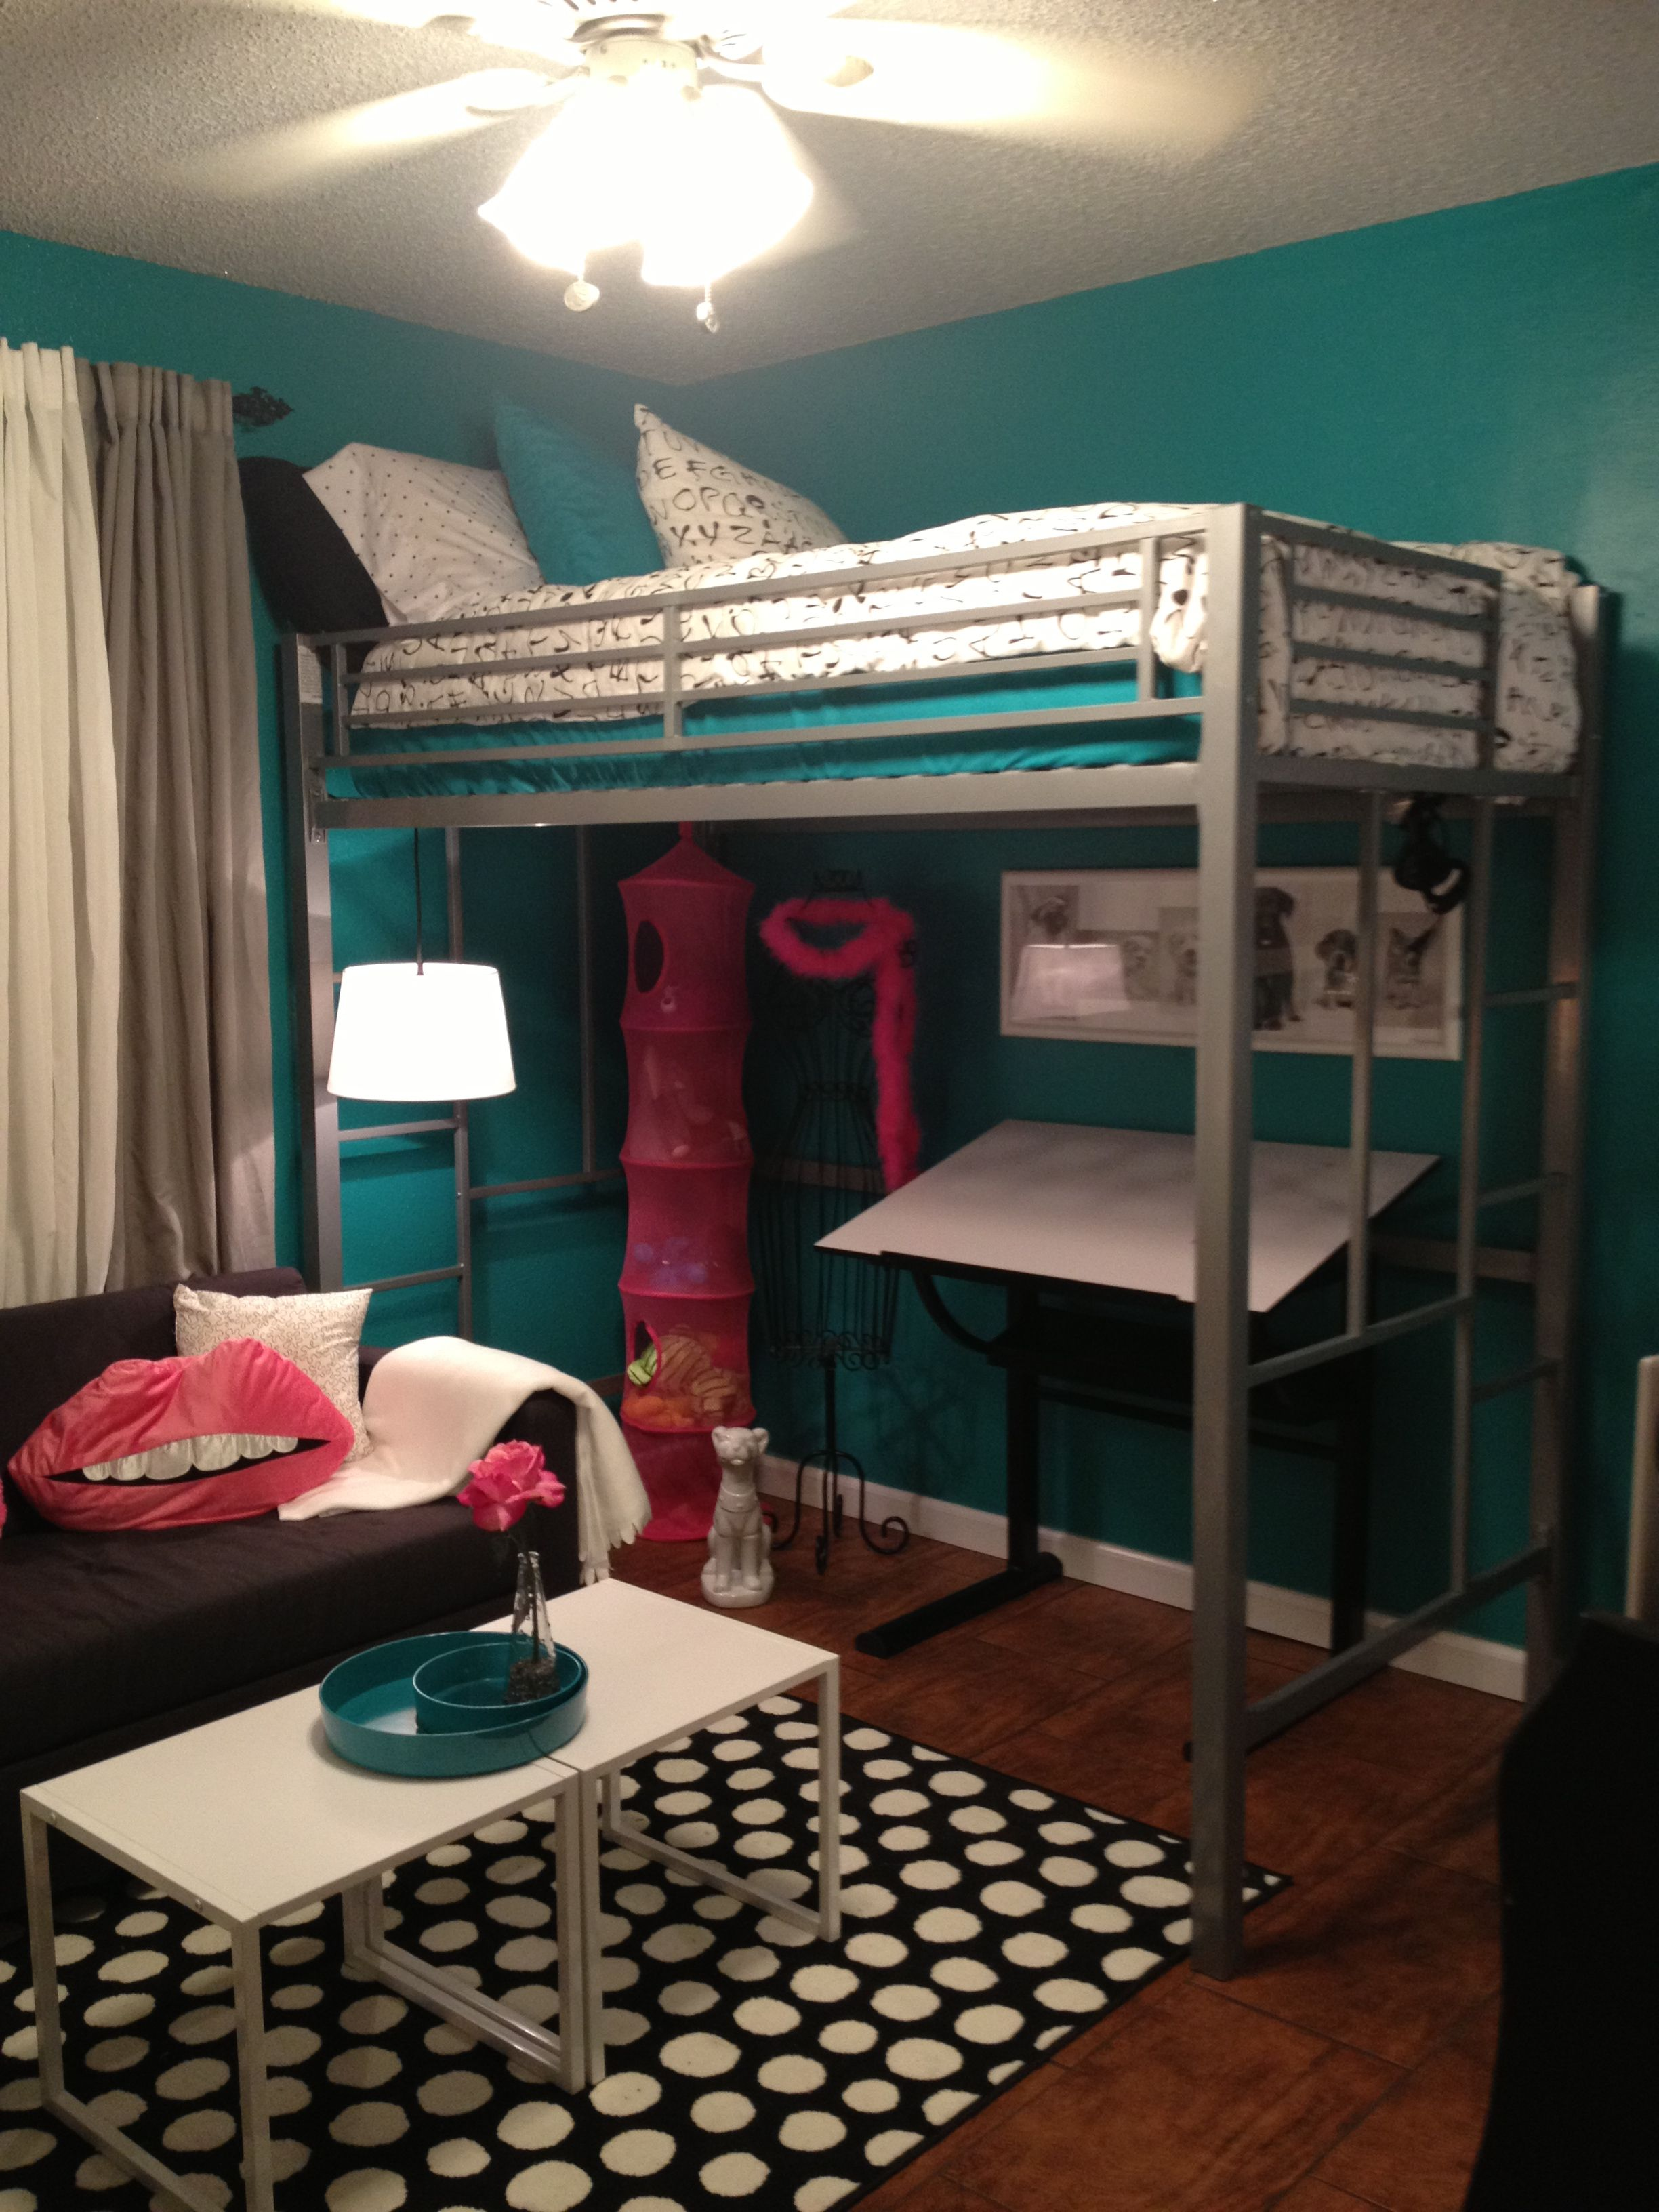 Teen room tween room bedroom idea loft bed black and Teenage room ideas small space